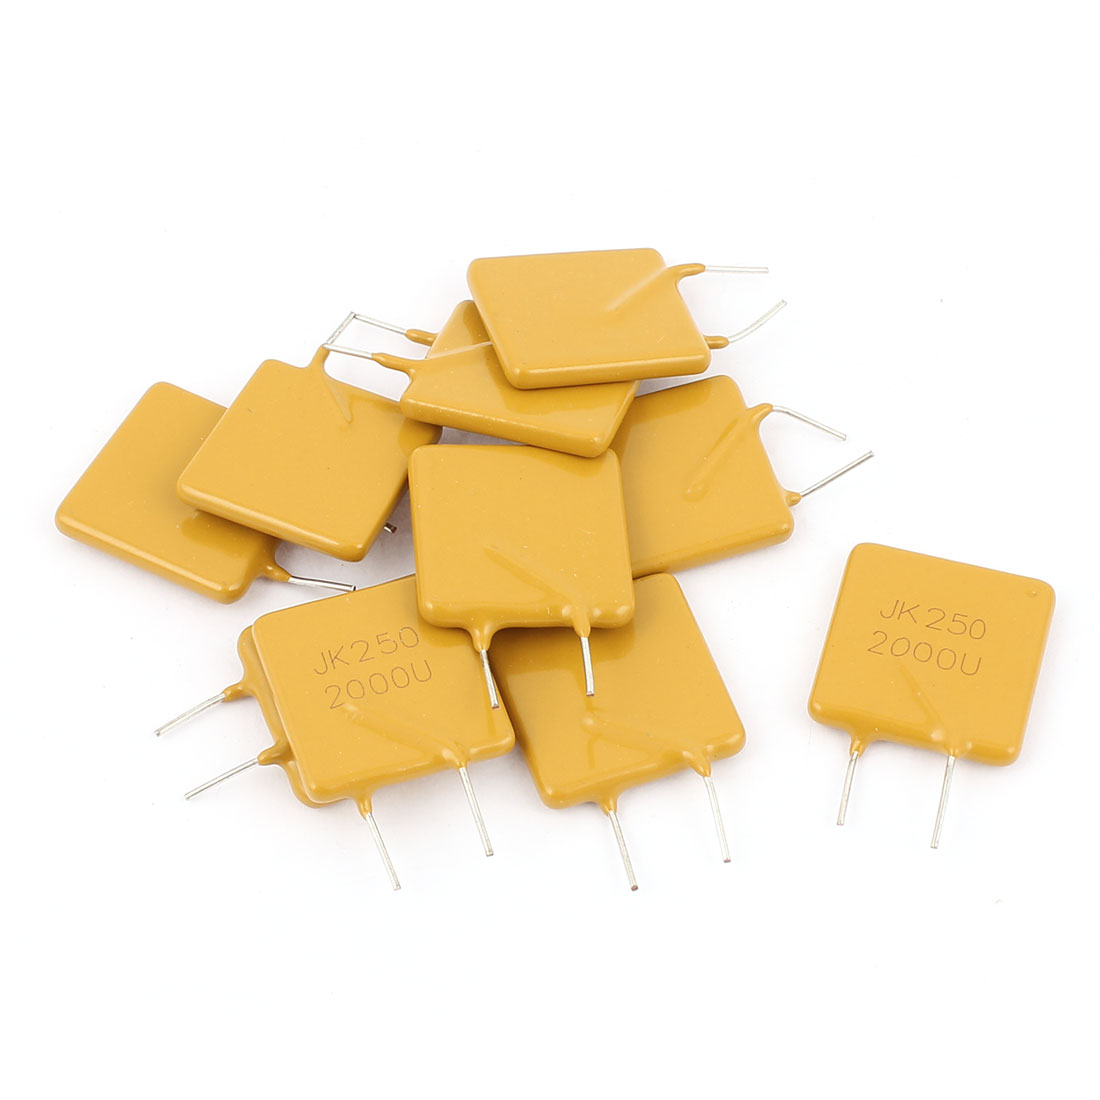 10 Pcs 250V 2A Resettable Fuse Radial Through Hole PPTC Polyswitch